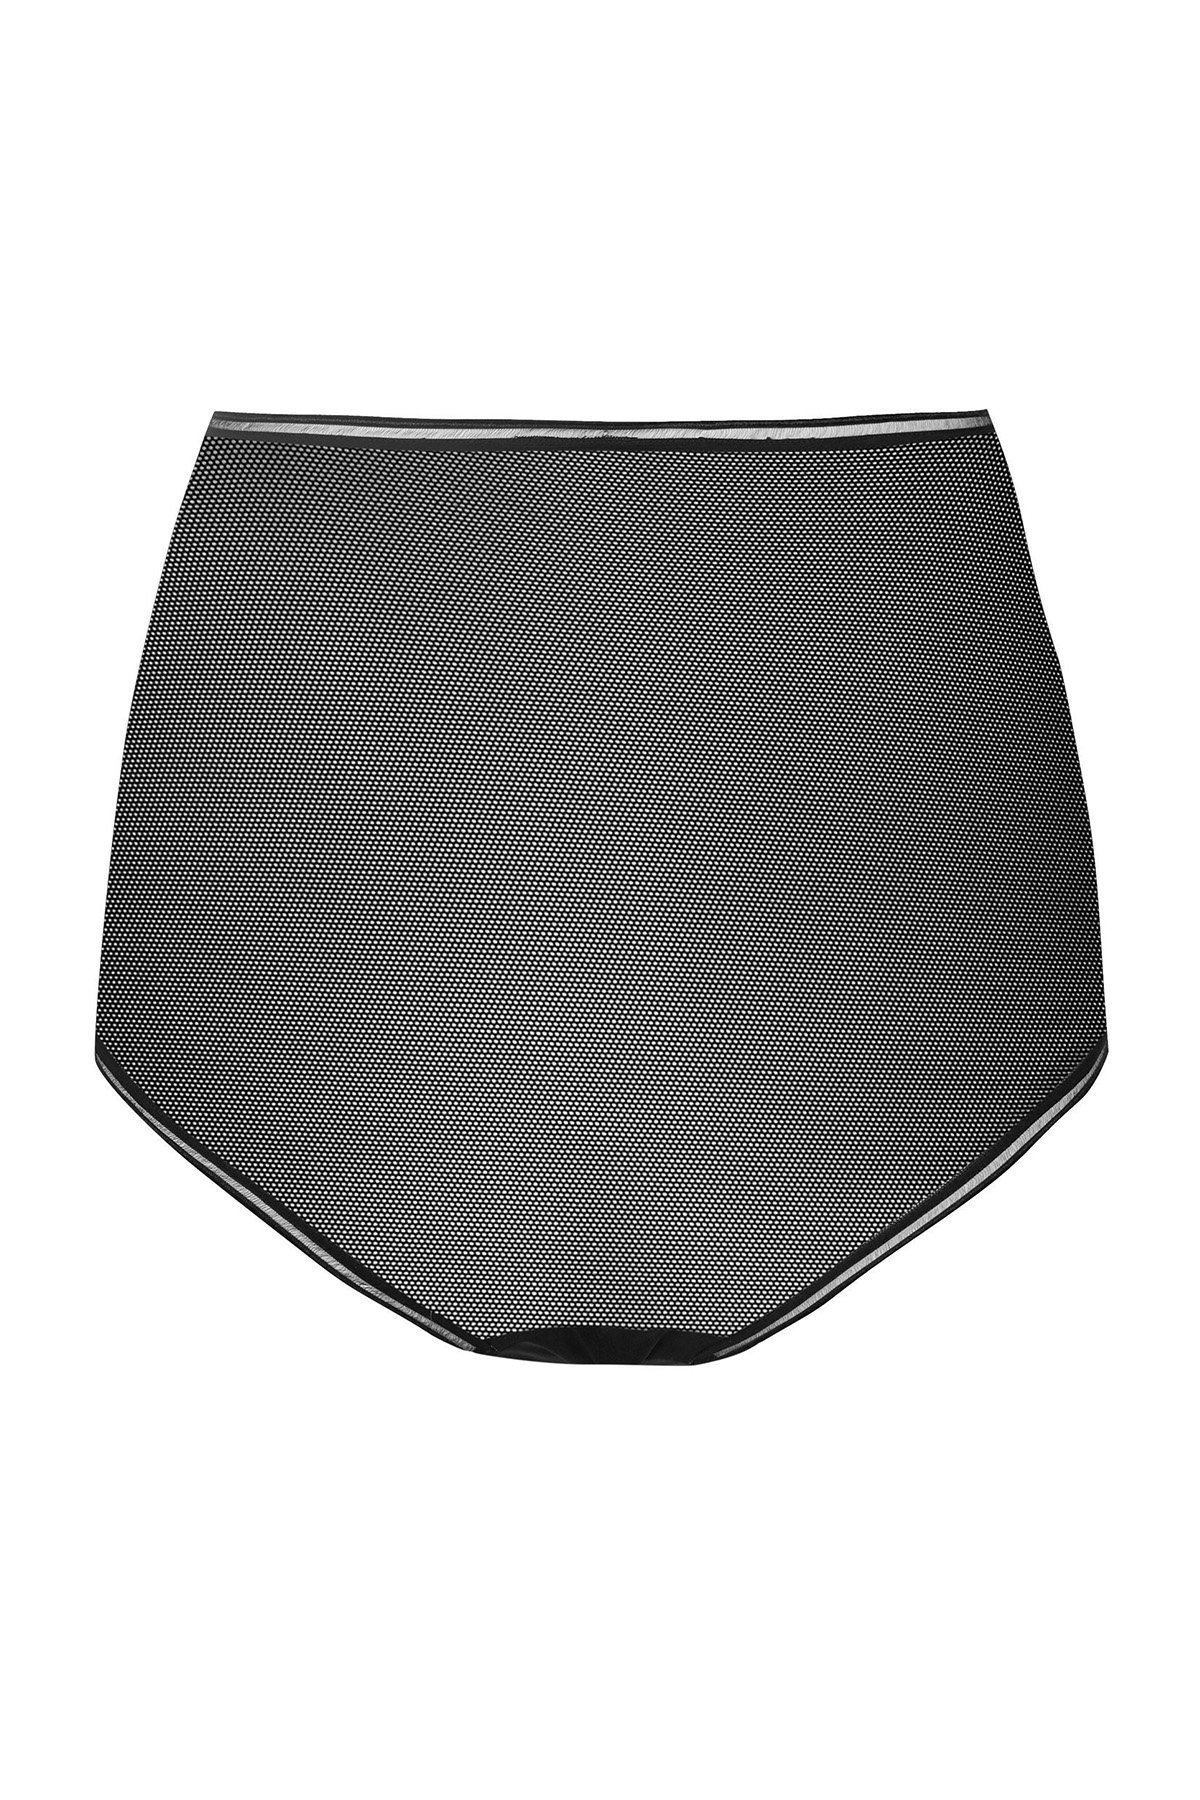 Pilar Bottom Black